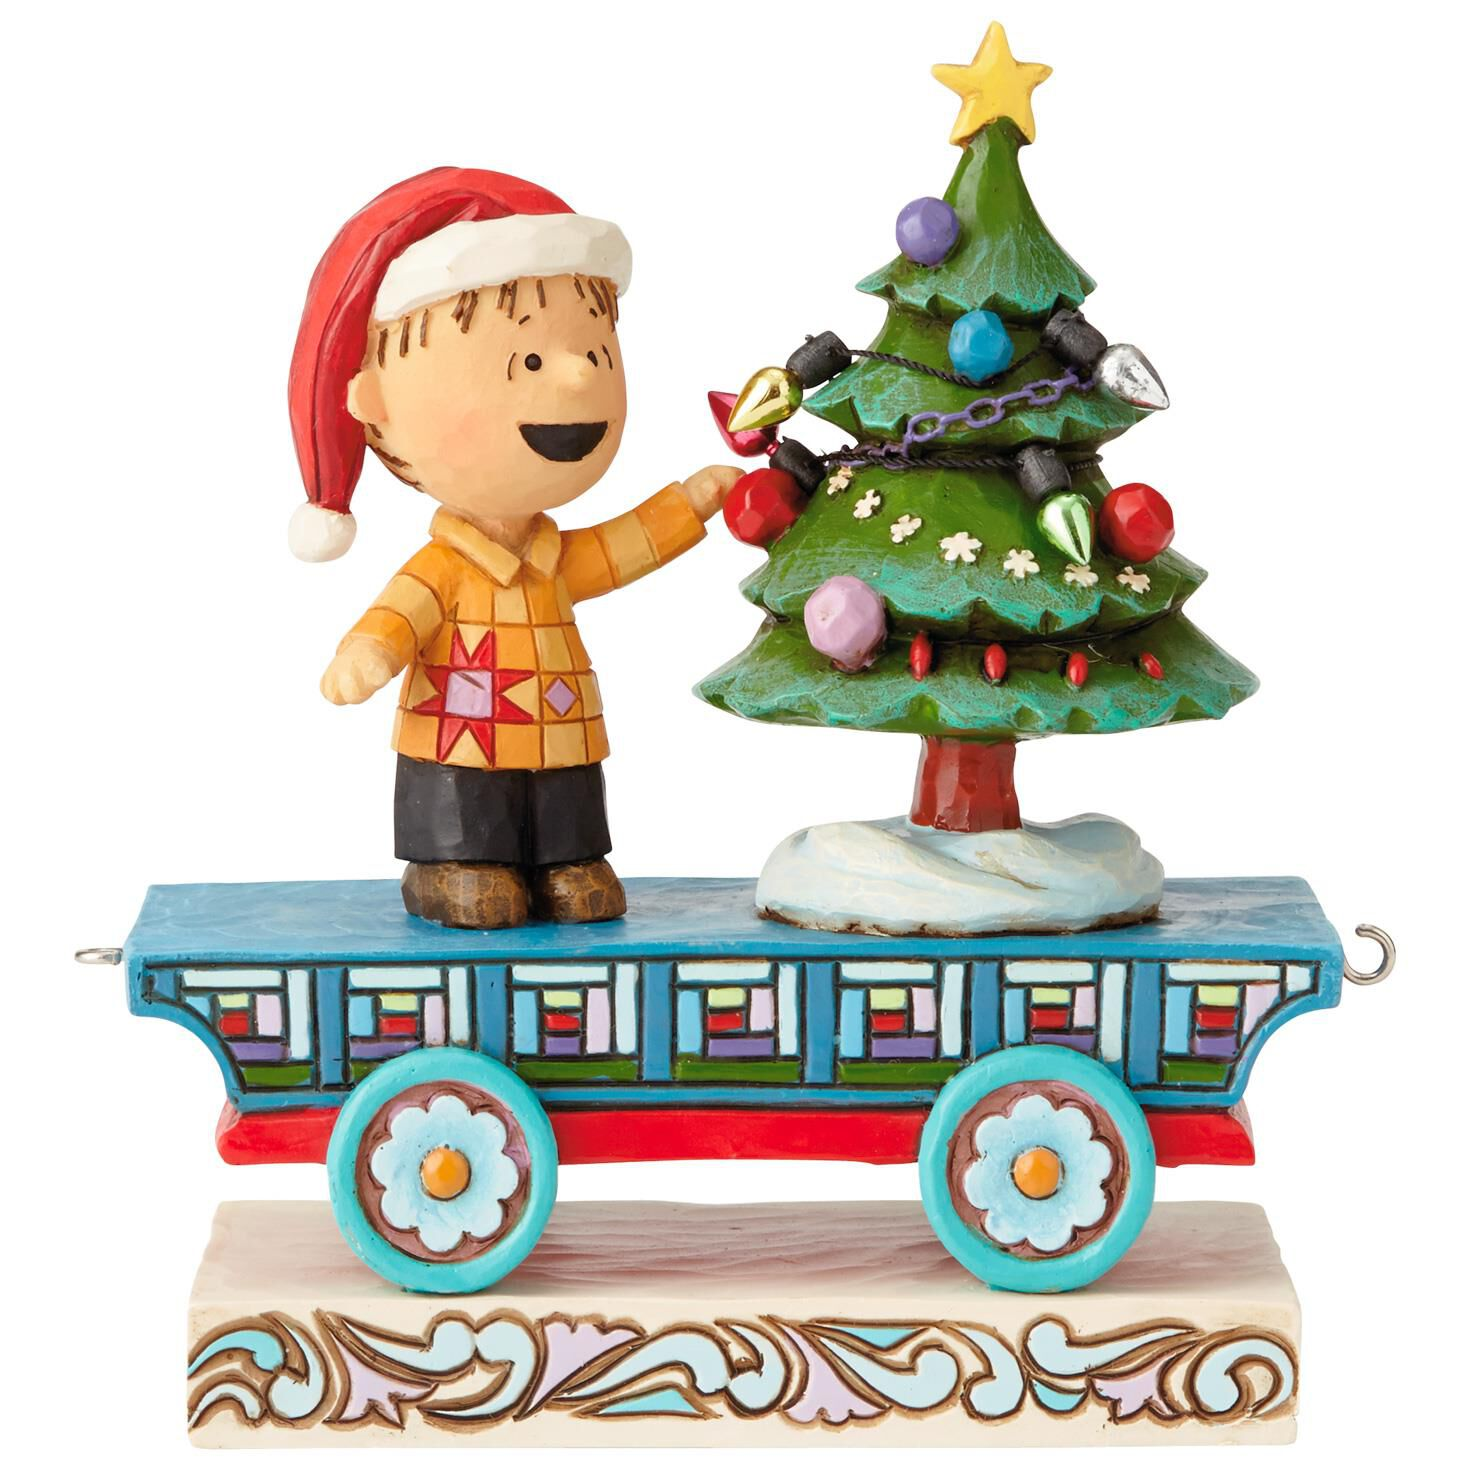 Christmas Train.Jim Shore Peanuts Linus On Christmas Train Mini Figurine 4 5